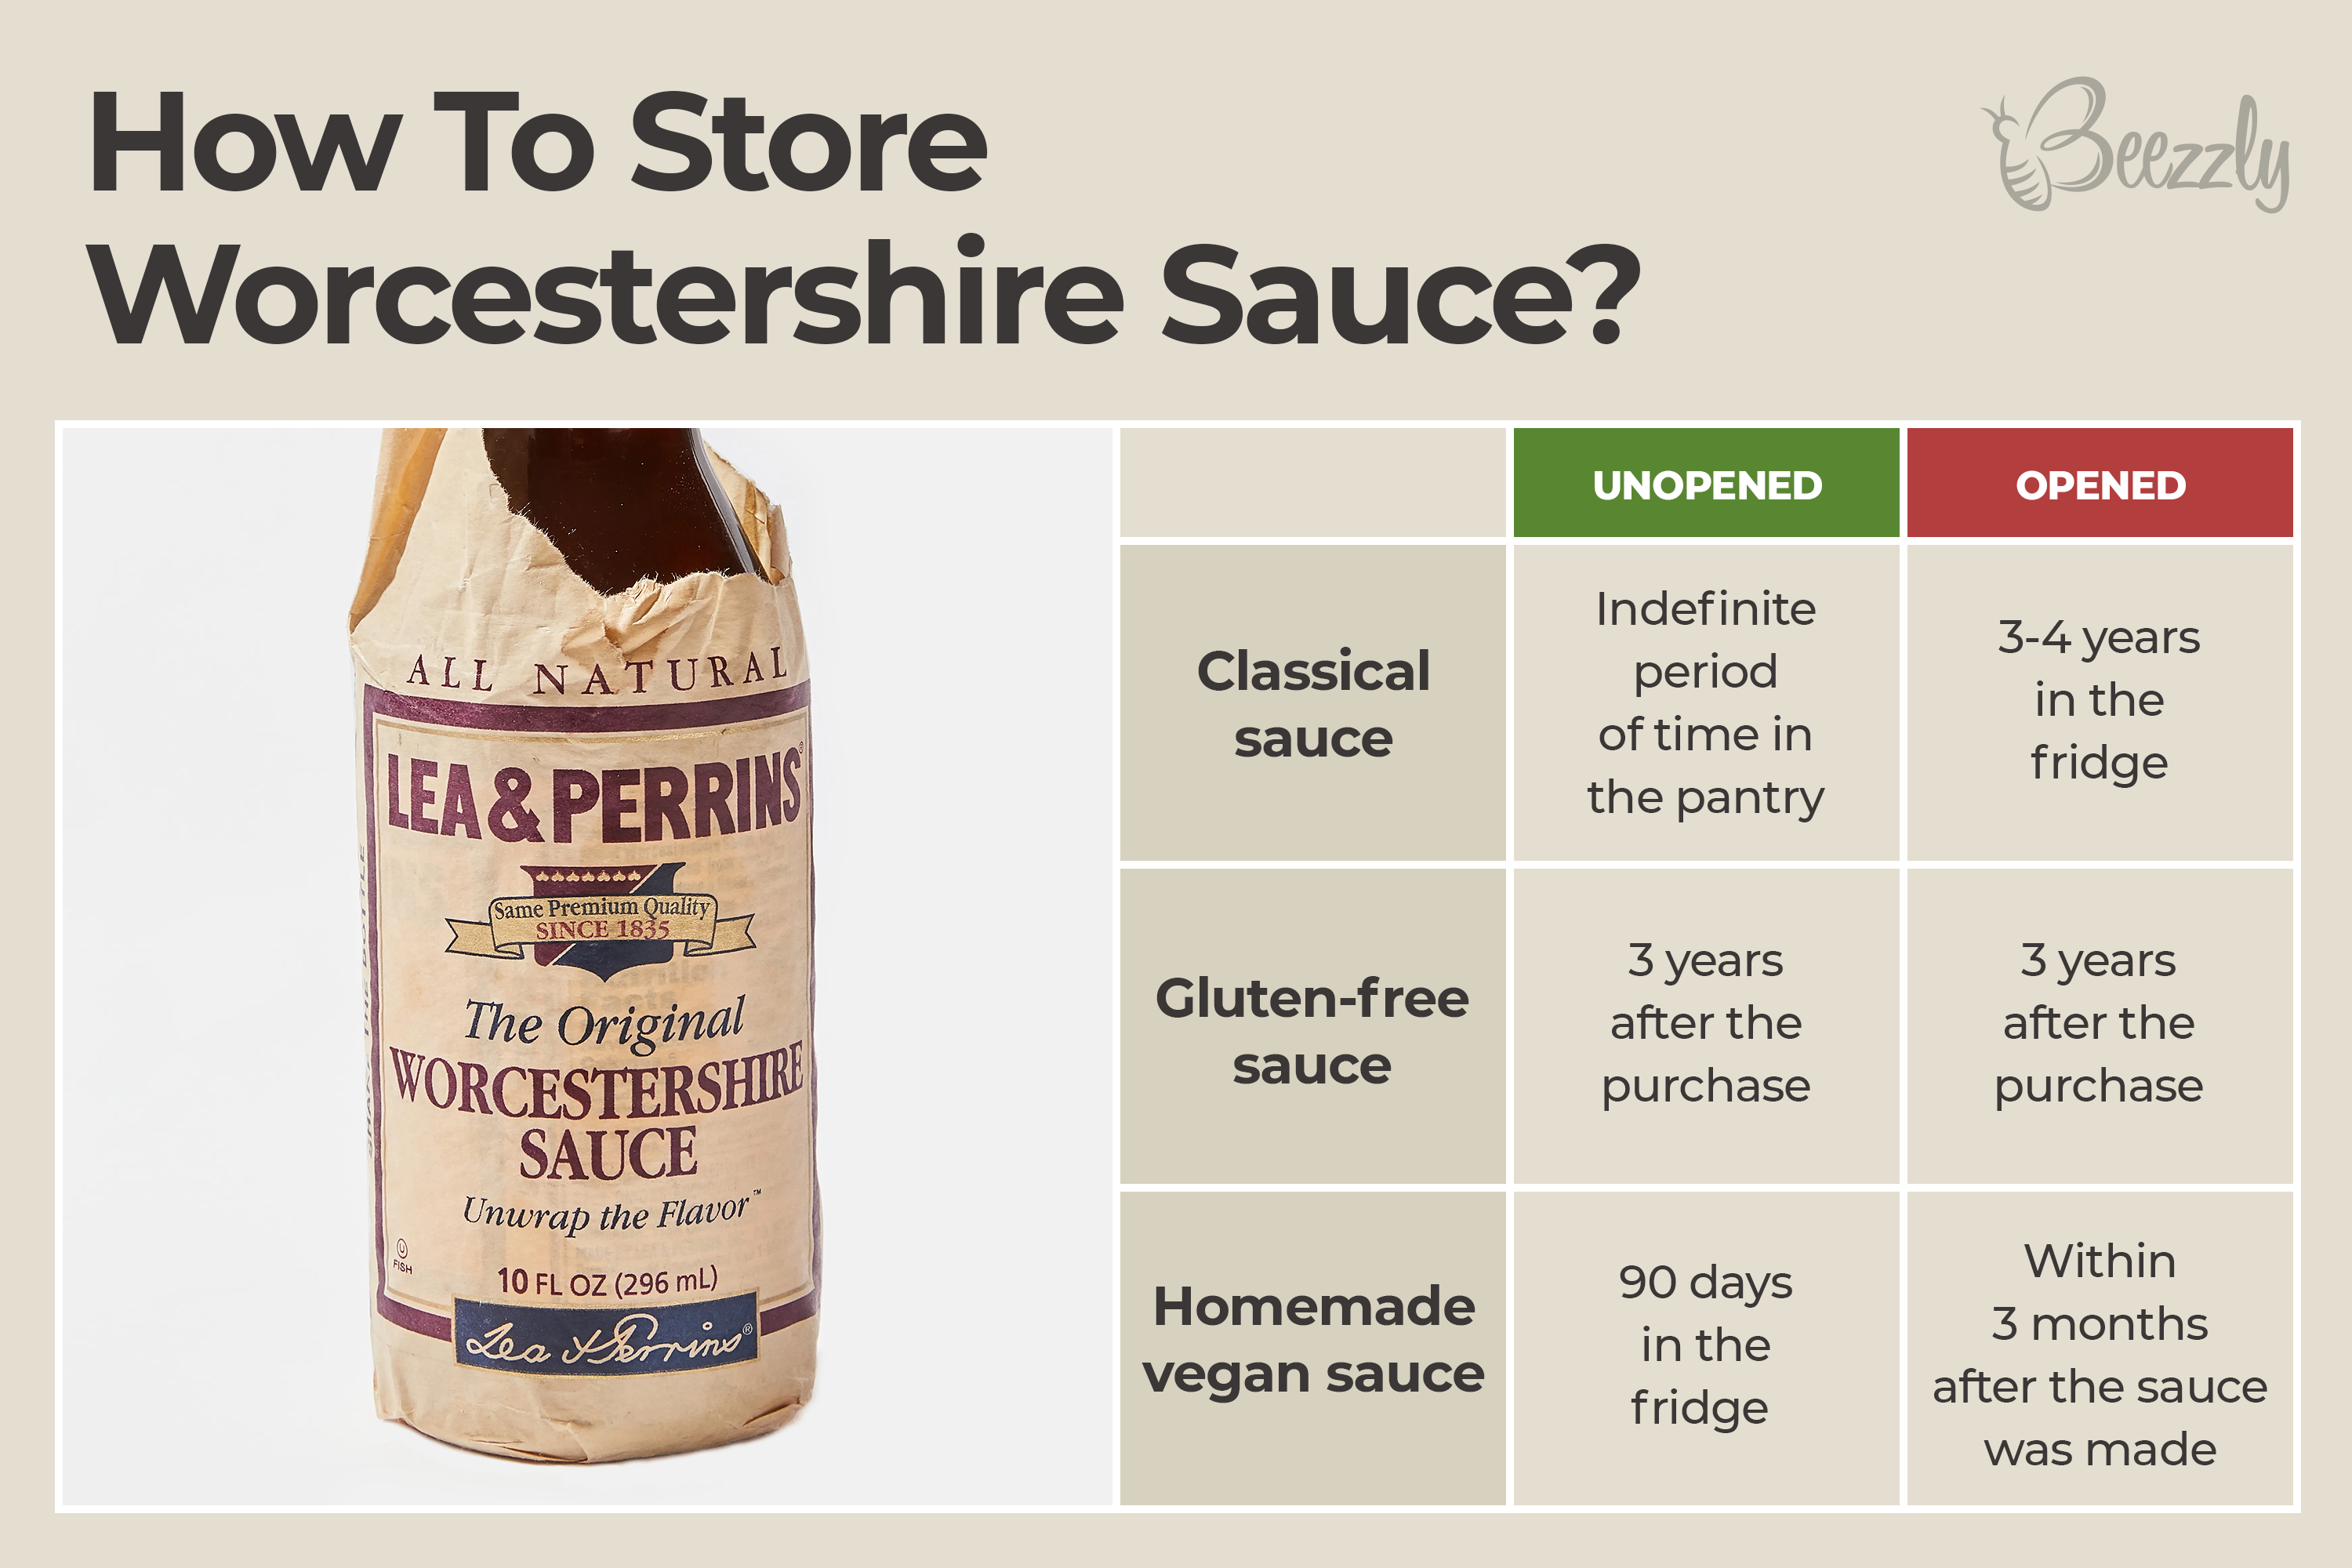 How to Store Worcestershire Sauce